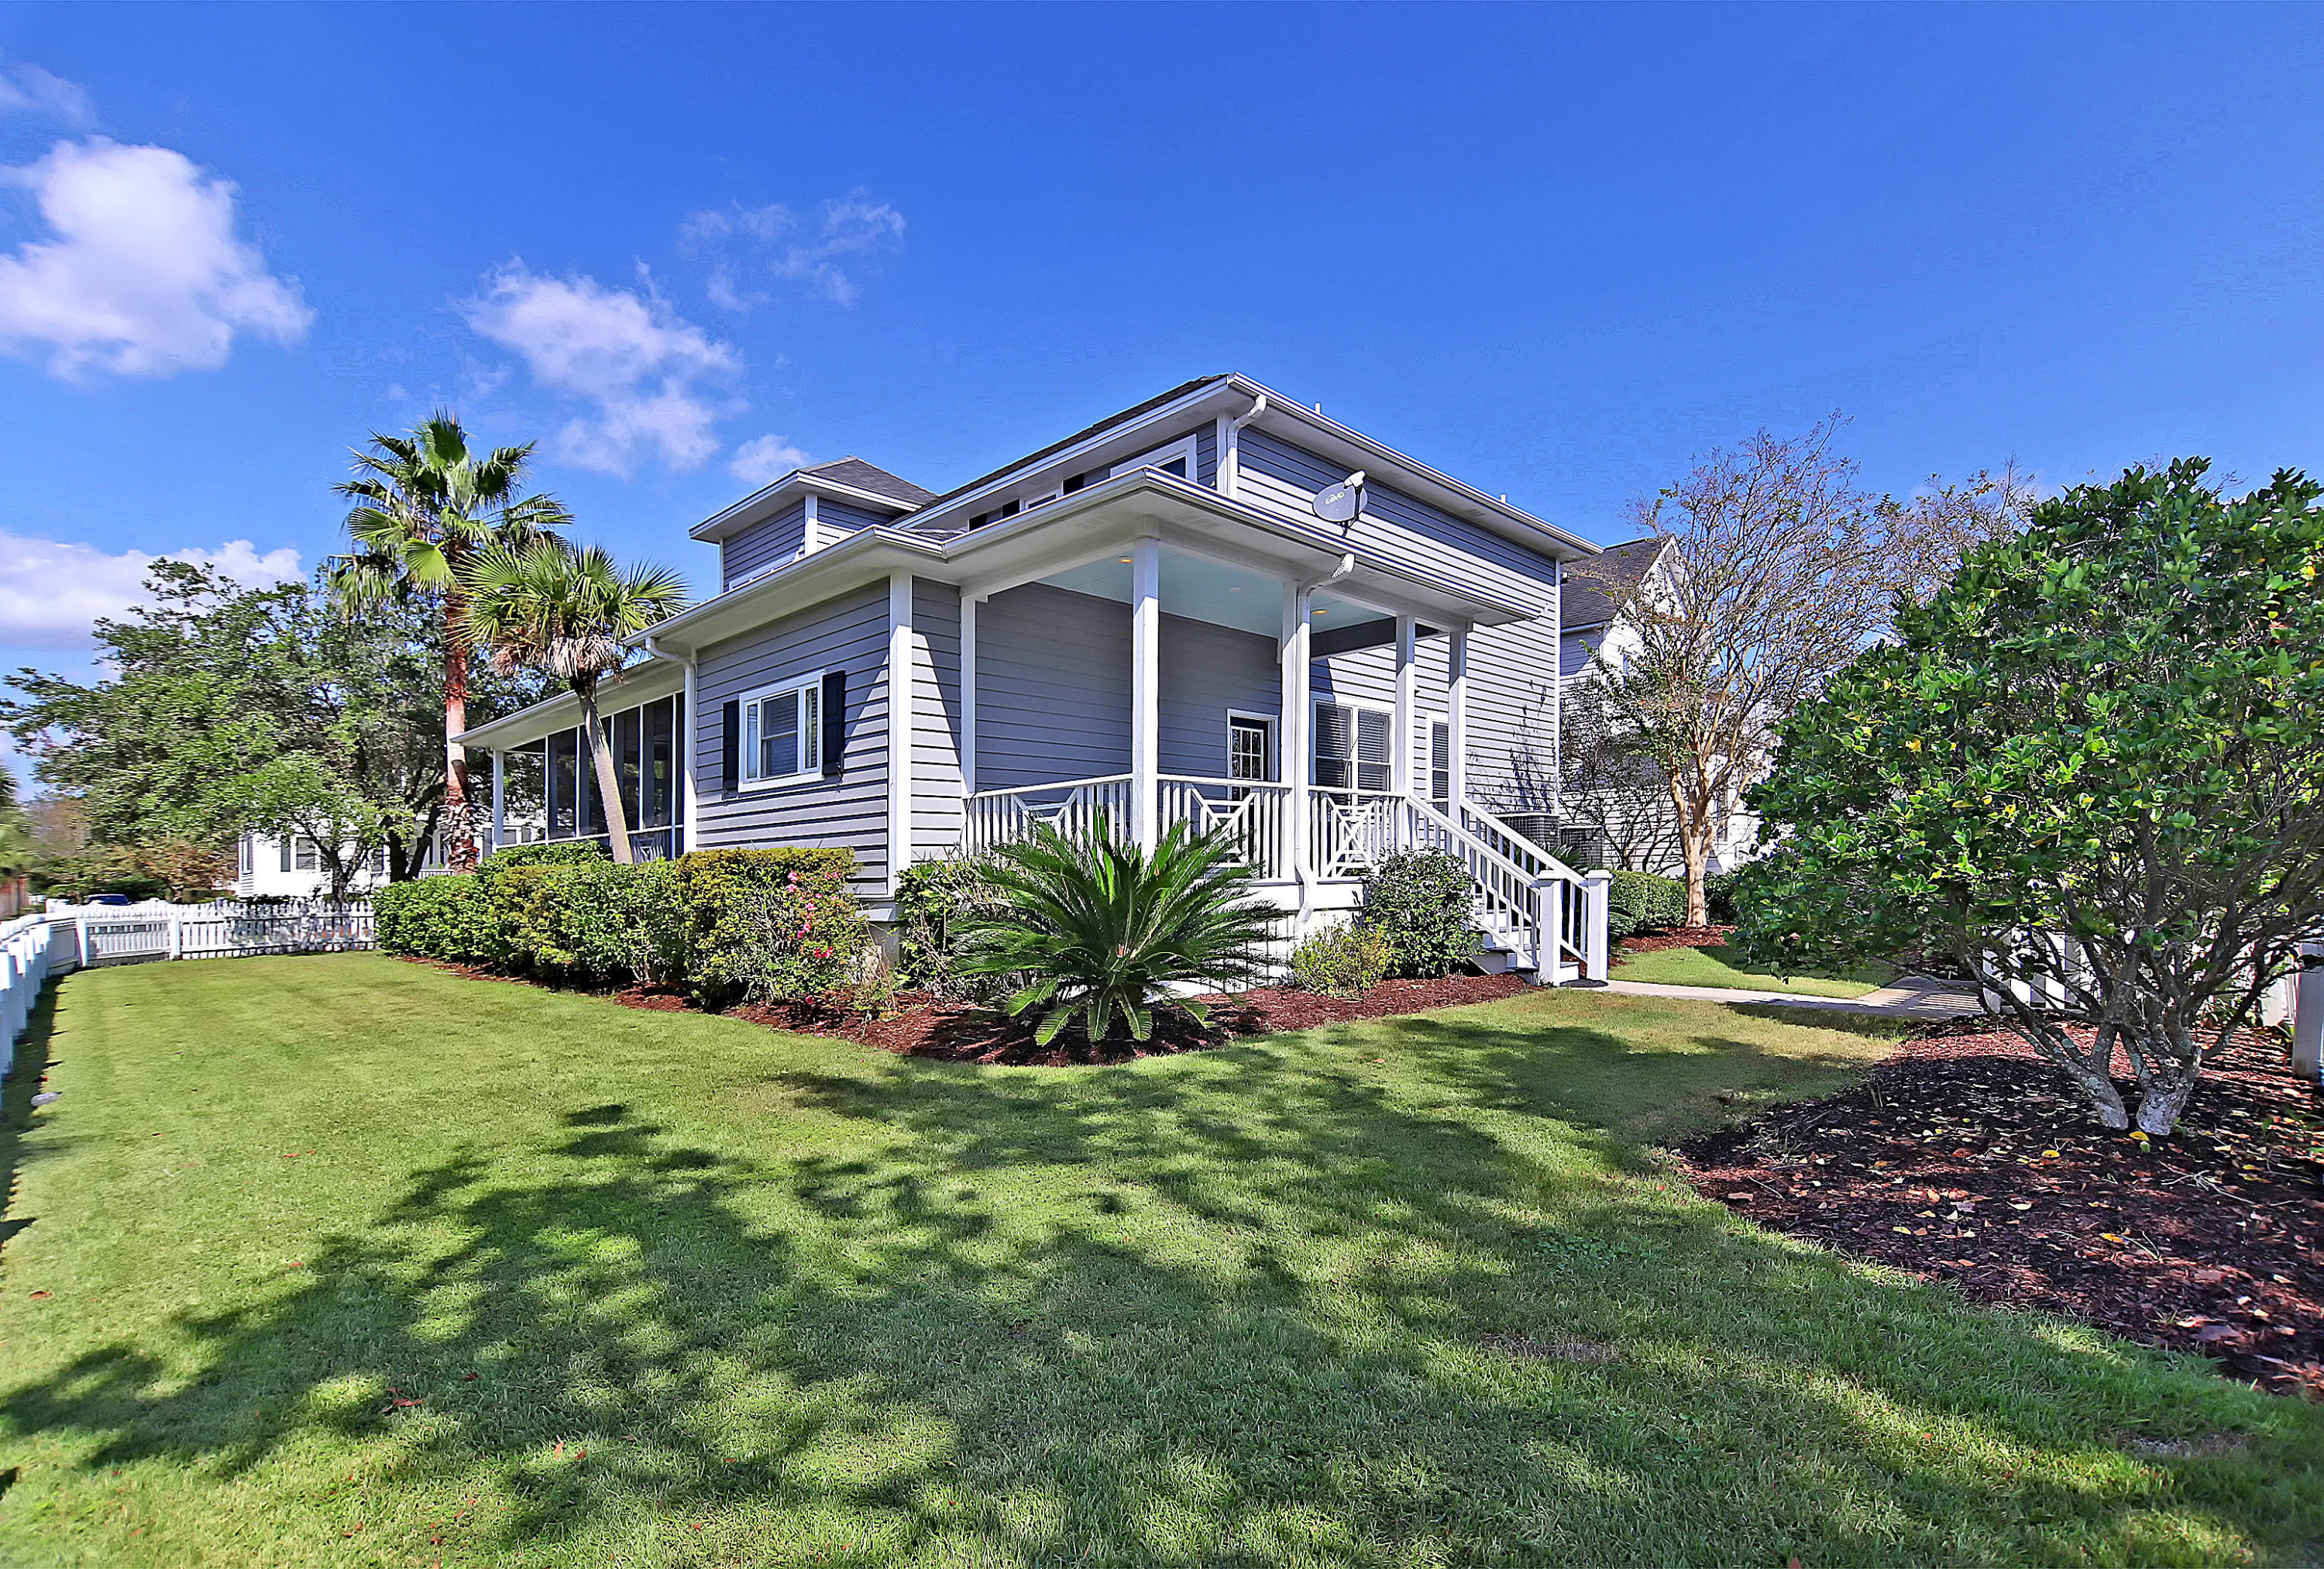 Rivertowne On The Wando Homes For Sale - 2520 Rivertowne, Mount Pleasant, SC - 3